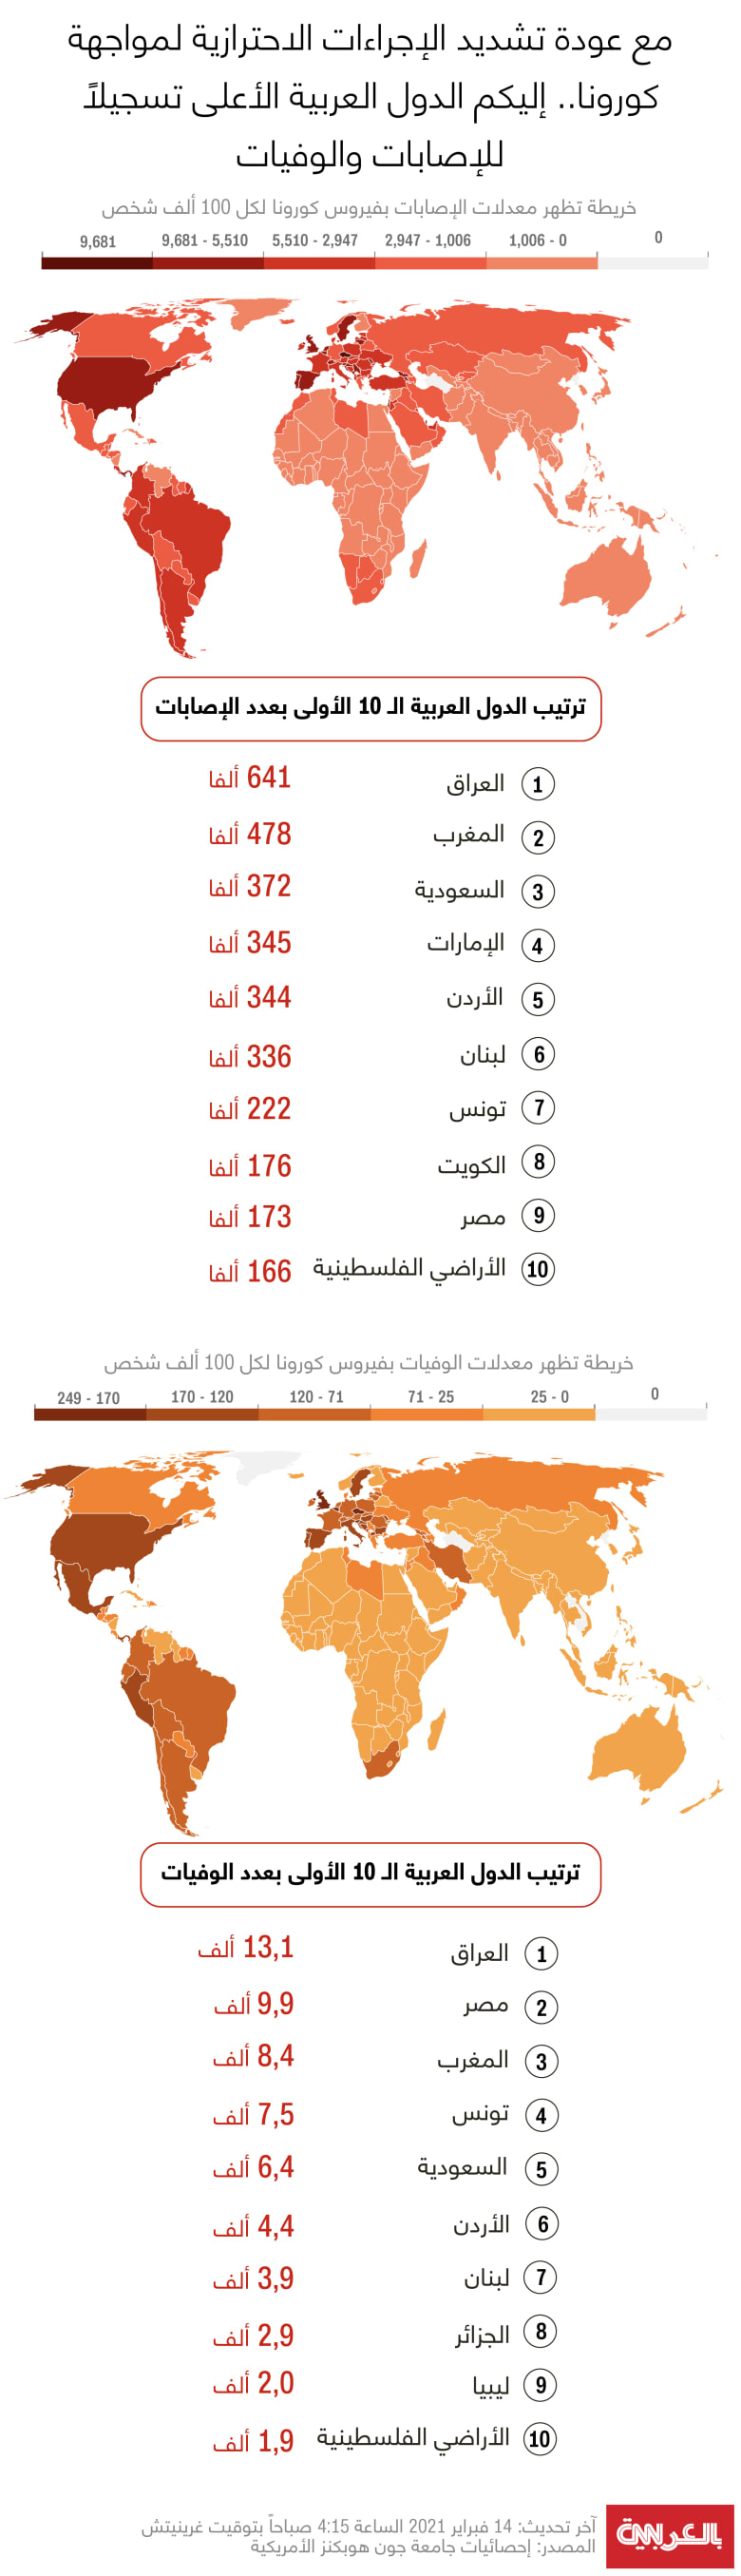 Arab-countries-infections-deaths-FEB-14